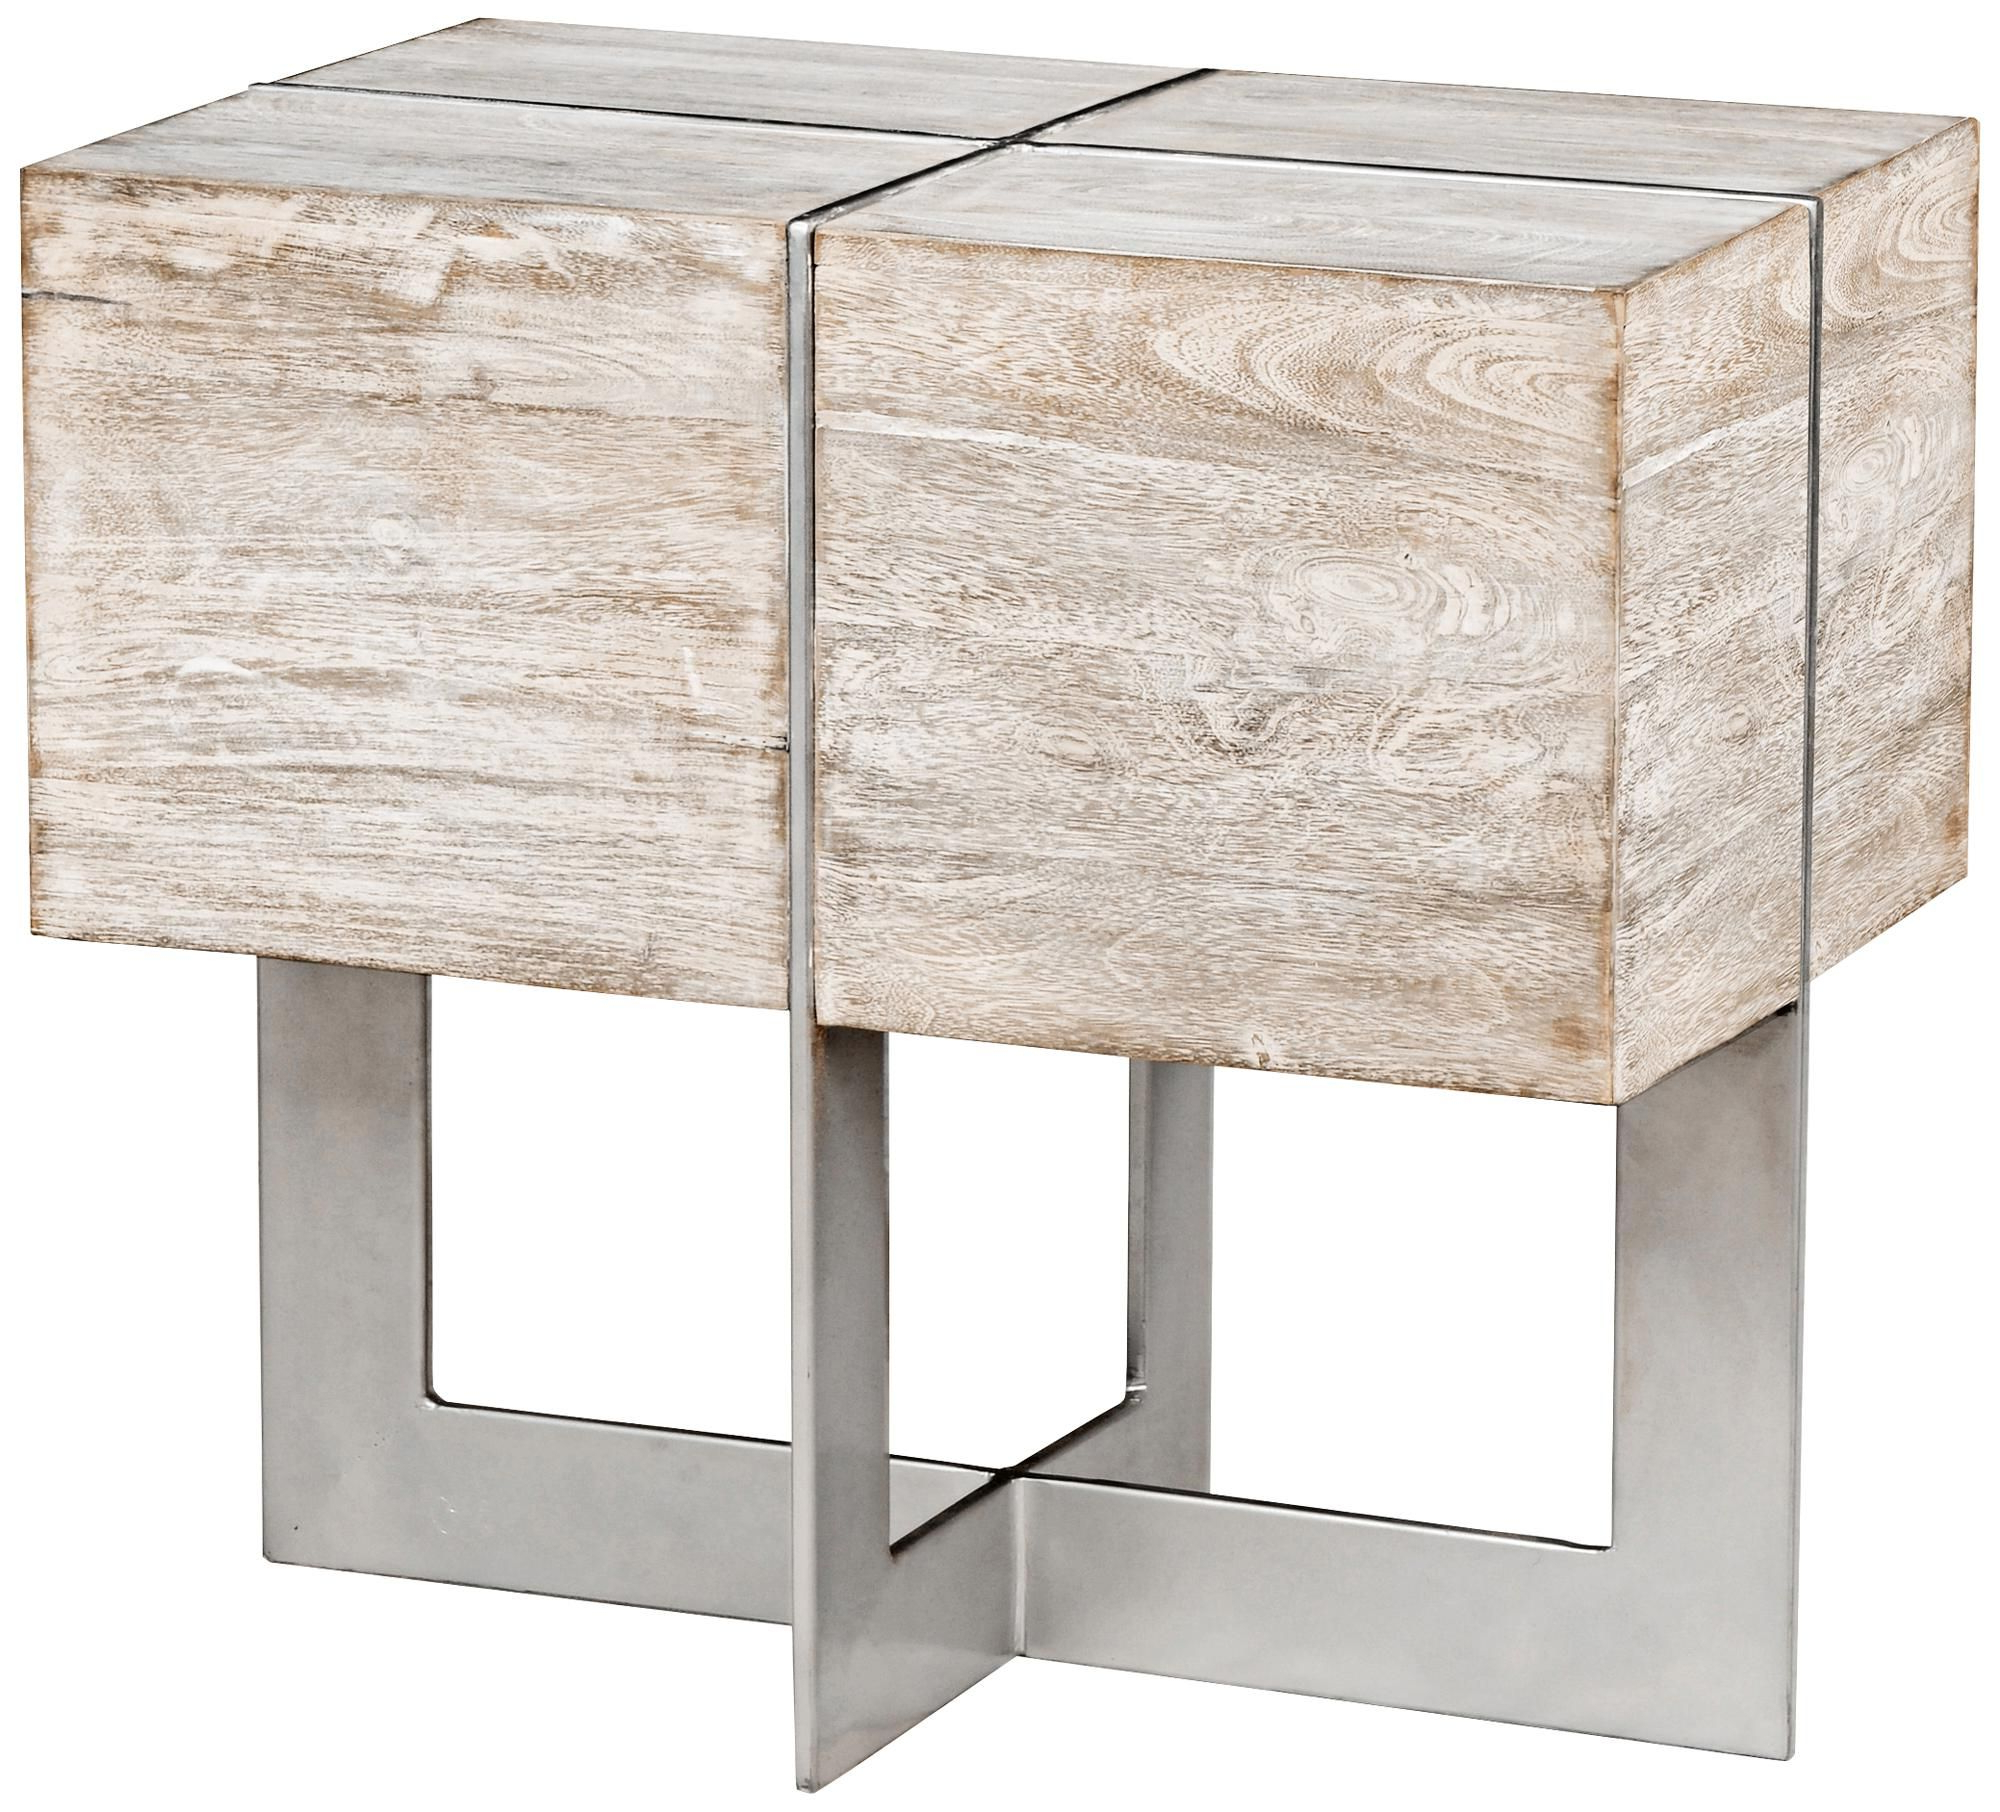 Desmond White Wash Solid Mango Wood Block End Table | Home Accents Within Parsons Walnut Top & Dark Steel Base 48X16 Console Tables (Gallery 12 of 20)